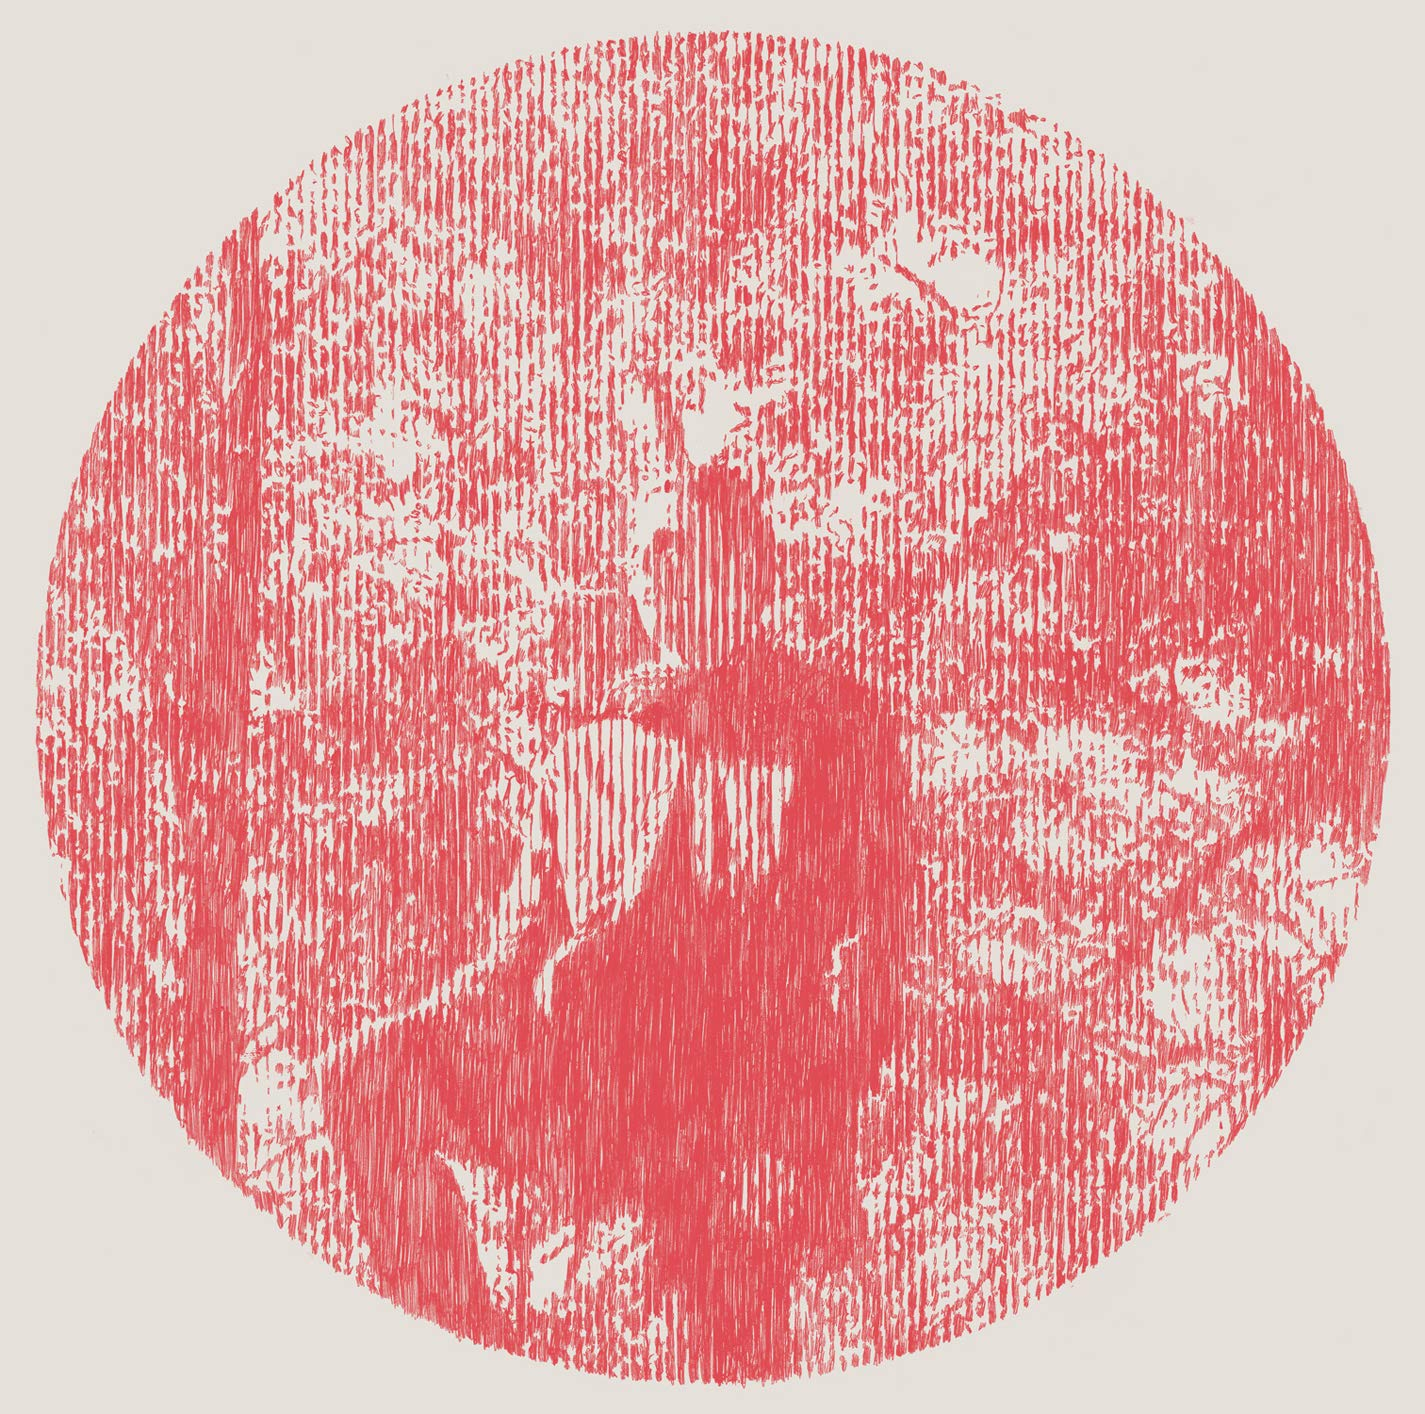 Owen Pallett, Heartland